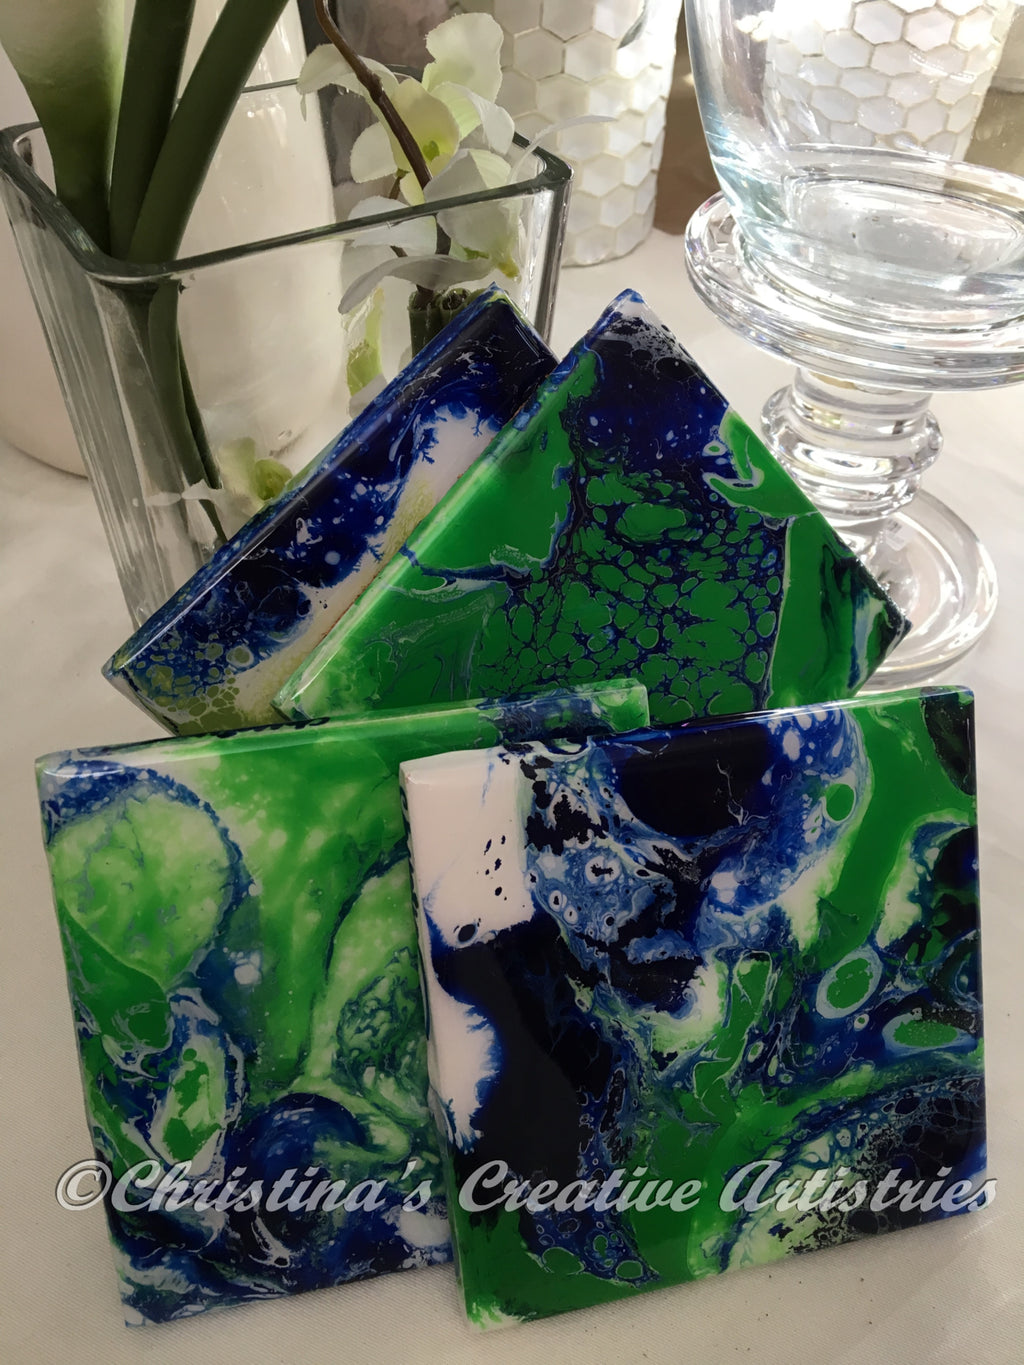 Power Fusion Ceramic Tile Coasters product image. Features 4 x4 inch ceramic tile coasters.  Handpainted.  Acrylics in navy blue and green on white background. Cork-backed. Durable coating. Sold as a set of 4.  Coaster stand included.